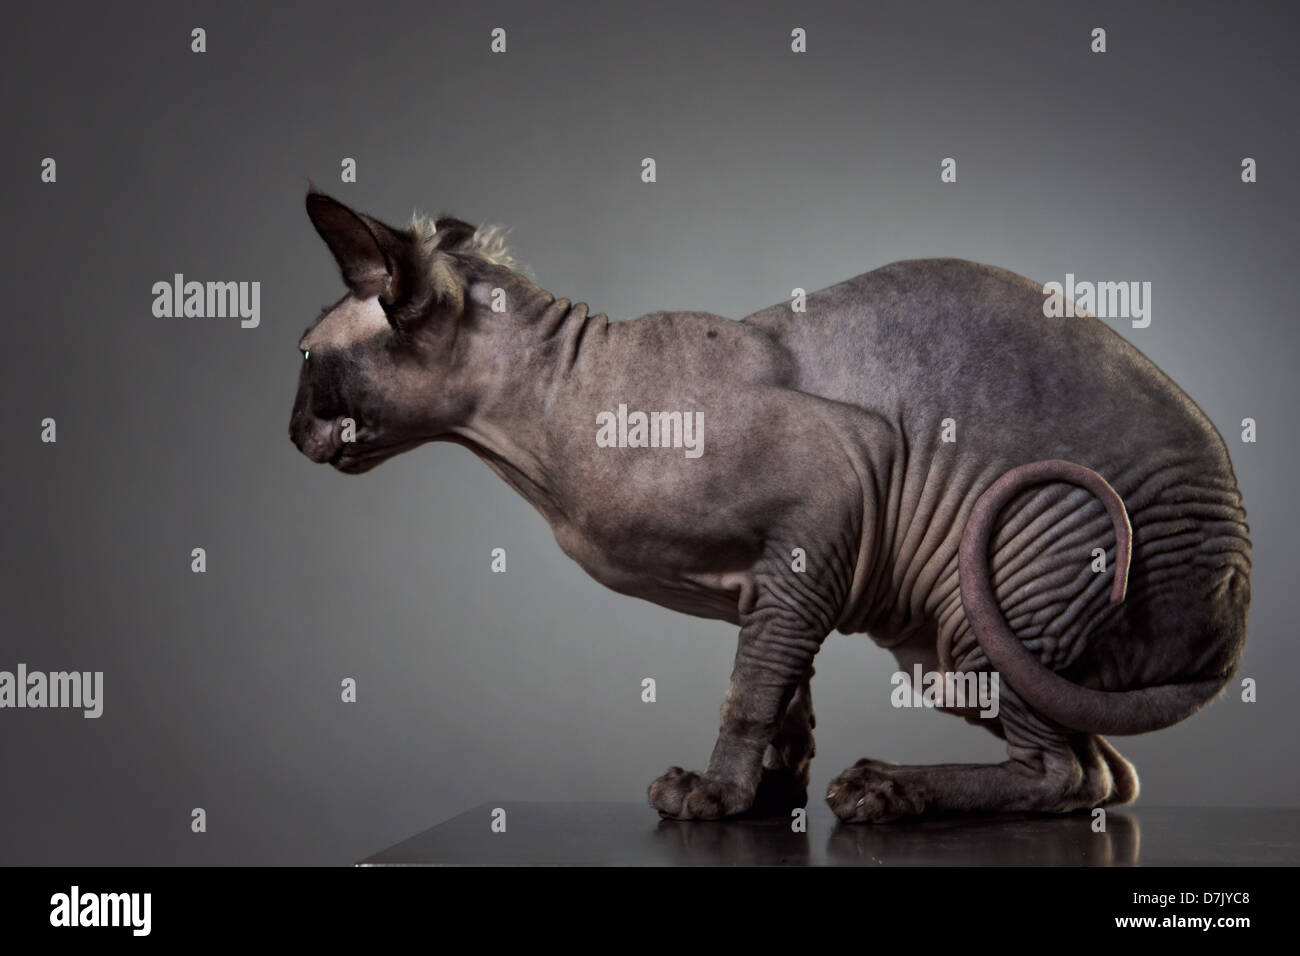 Side portrait of hairless Sphinx cat with tail coiled against gray background in studio - Stock Image